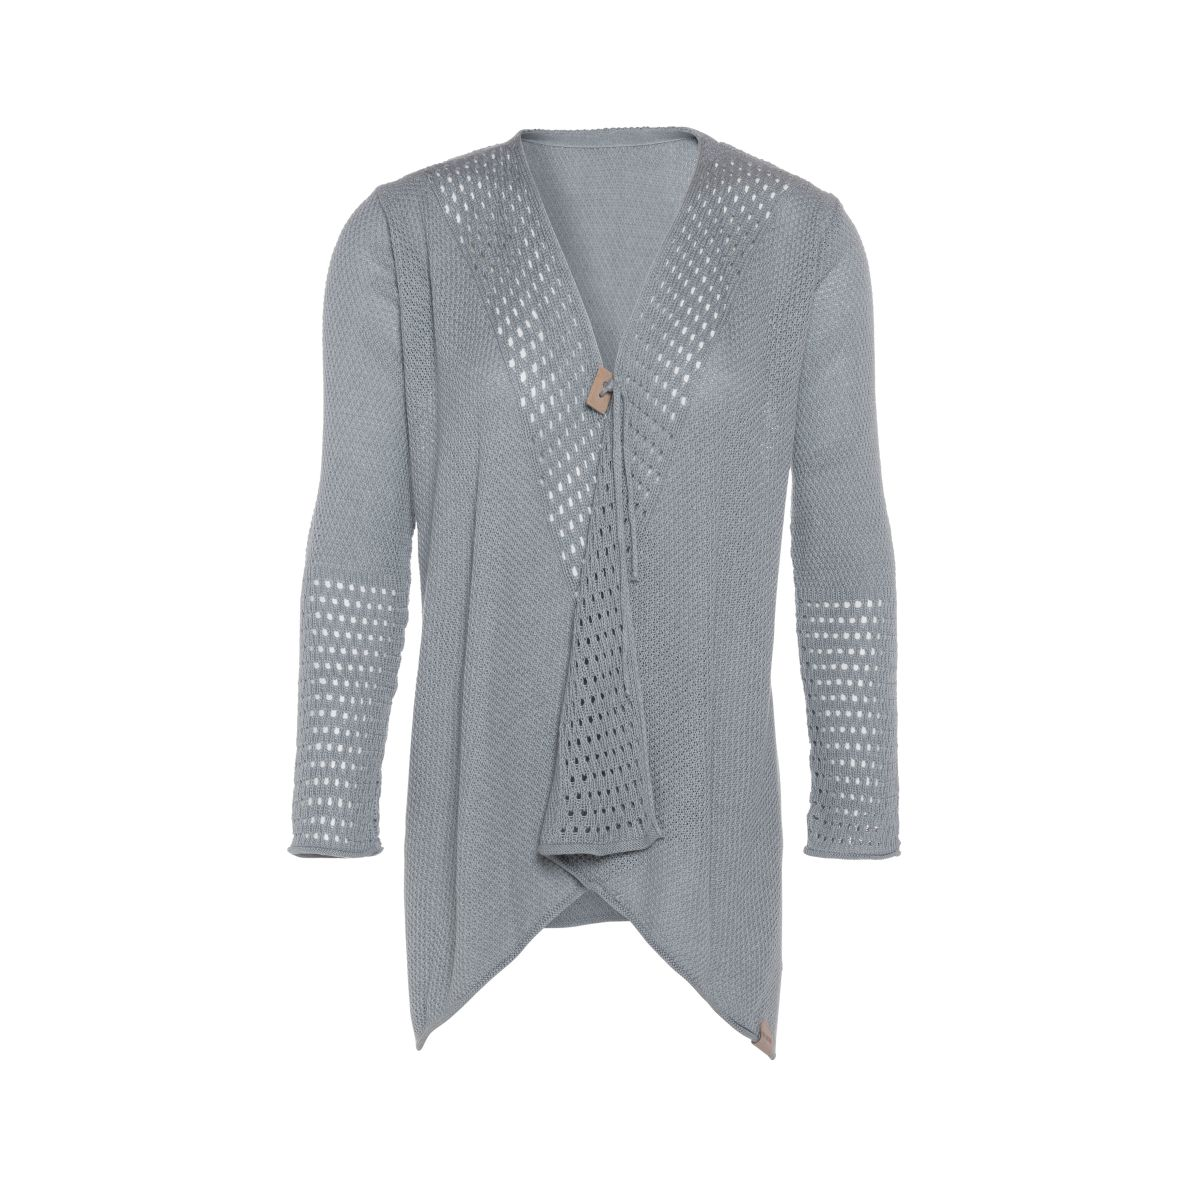 april knitted cardigan light grey 3638